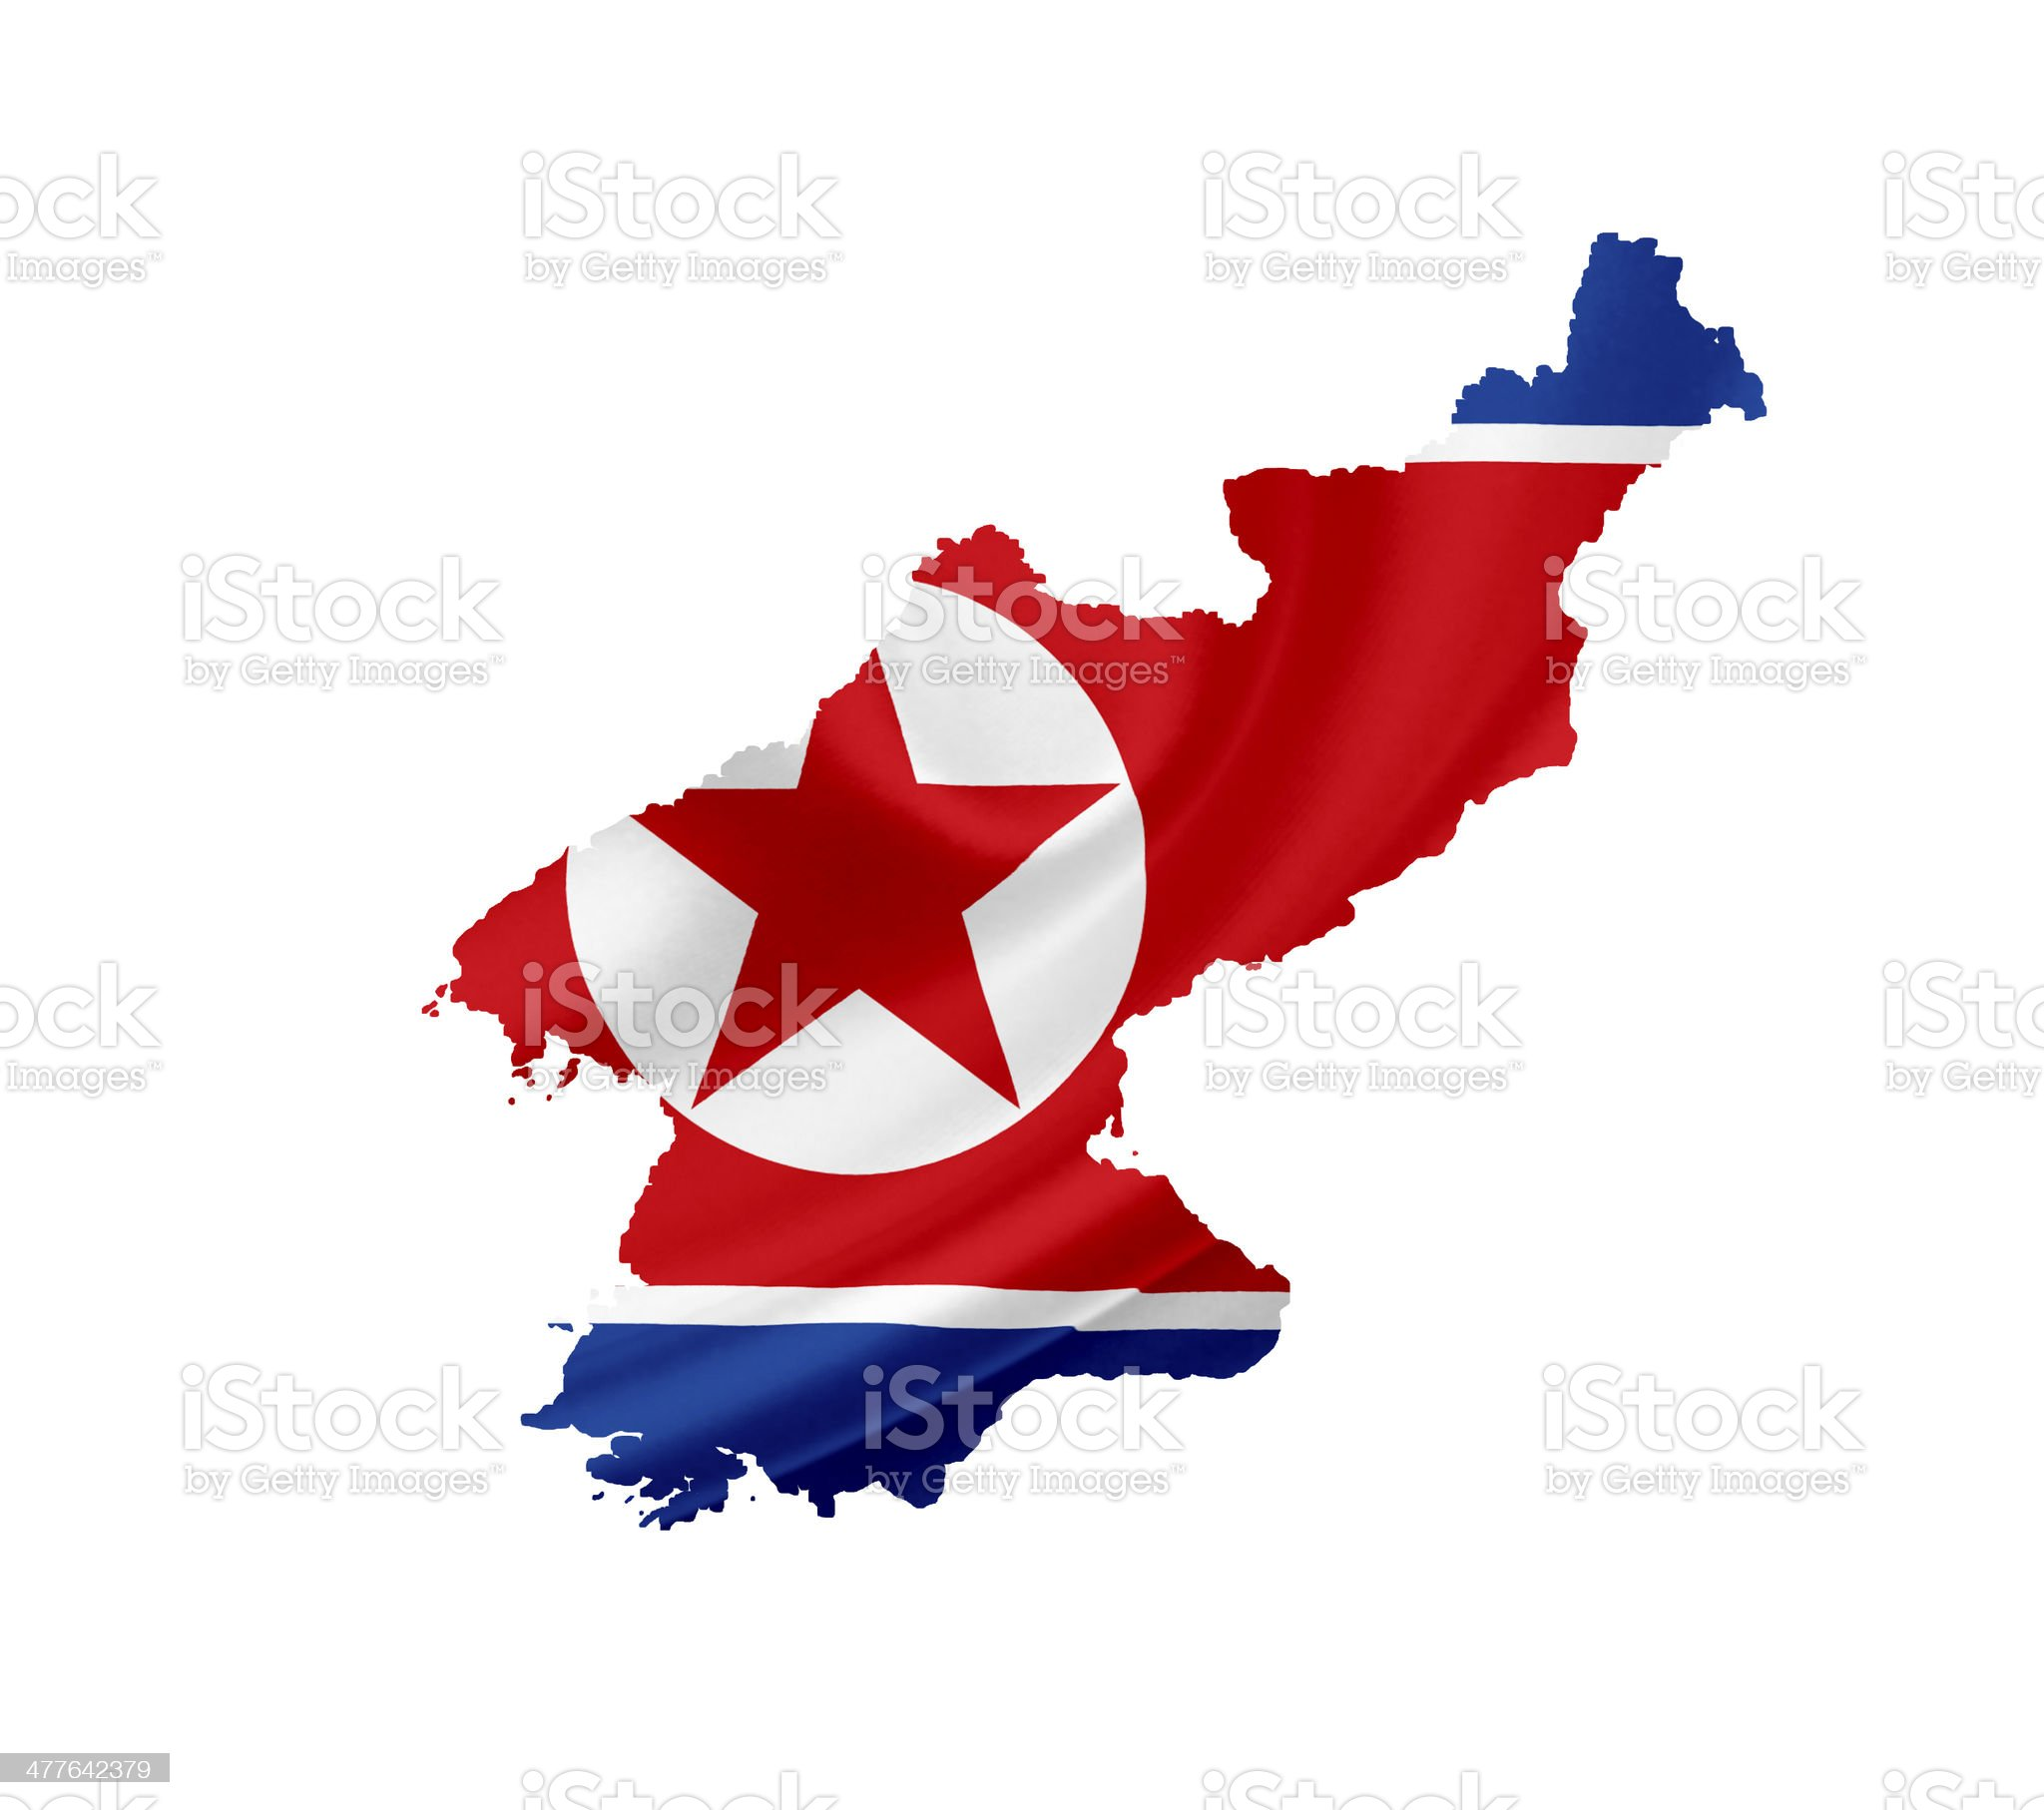 Map of North Korea with waving flag isolated on white royalty-free stock photo